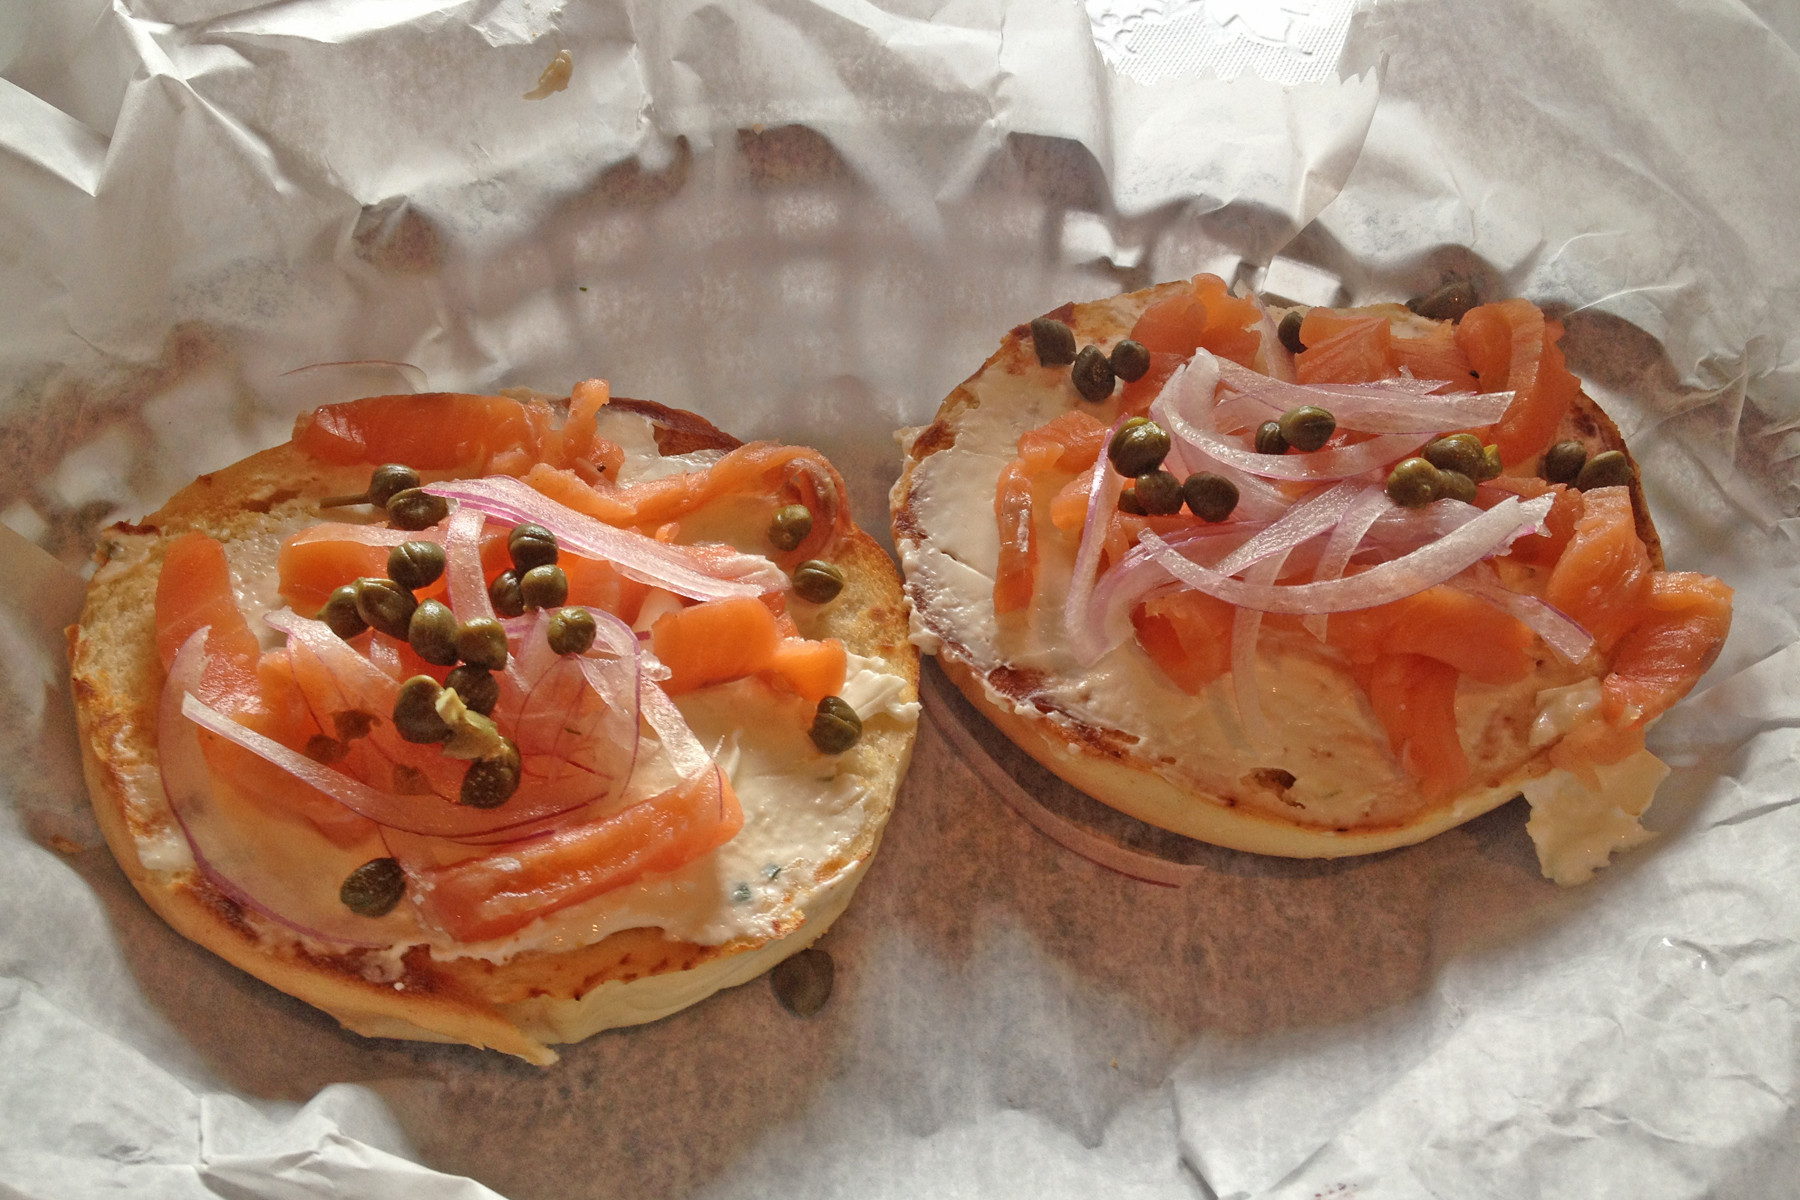 From the sandwich menu, cold-smoked salmon with lemon chive cream cheese, capers and red onion slivers top a crisp toasted bagel.